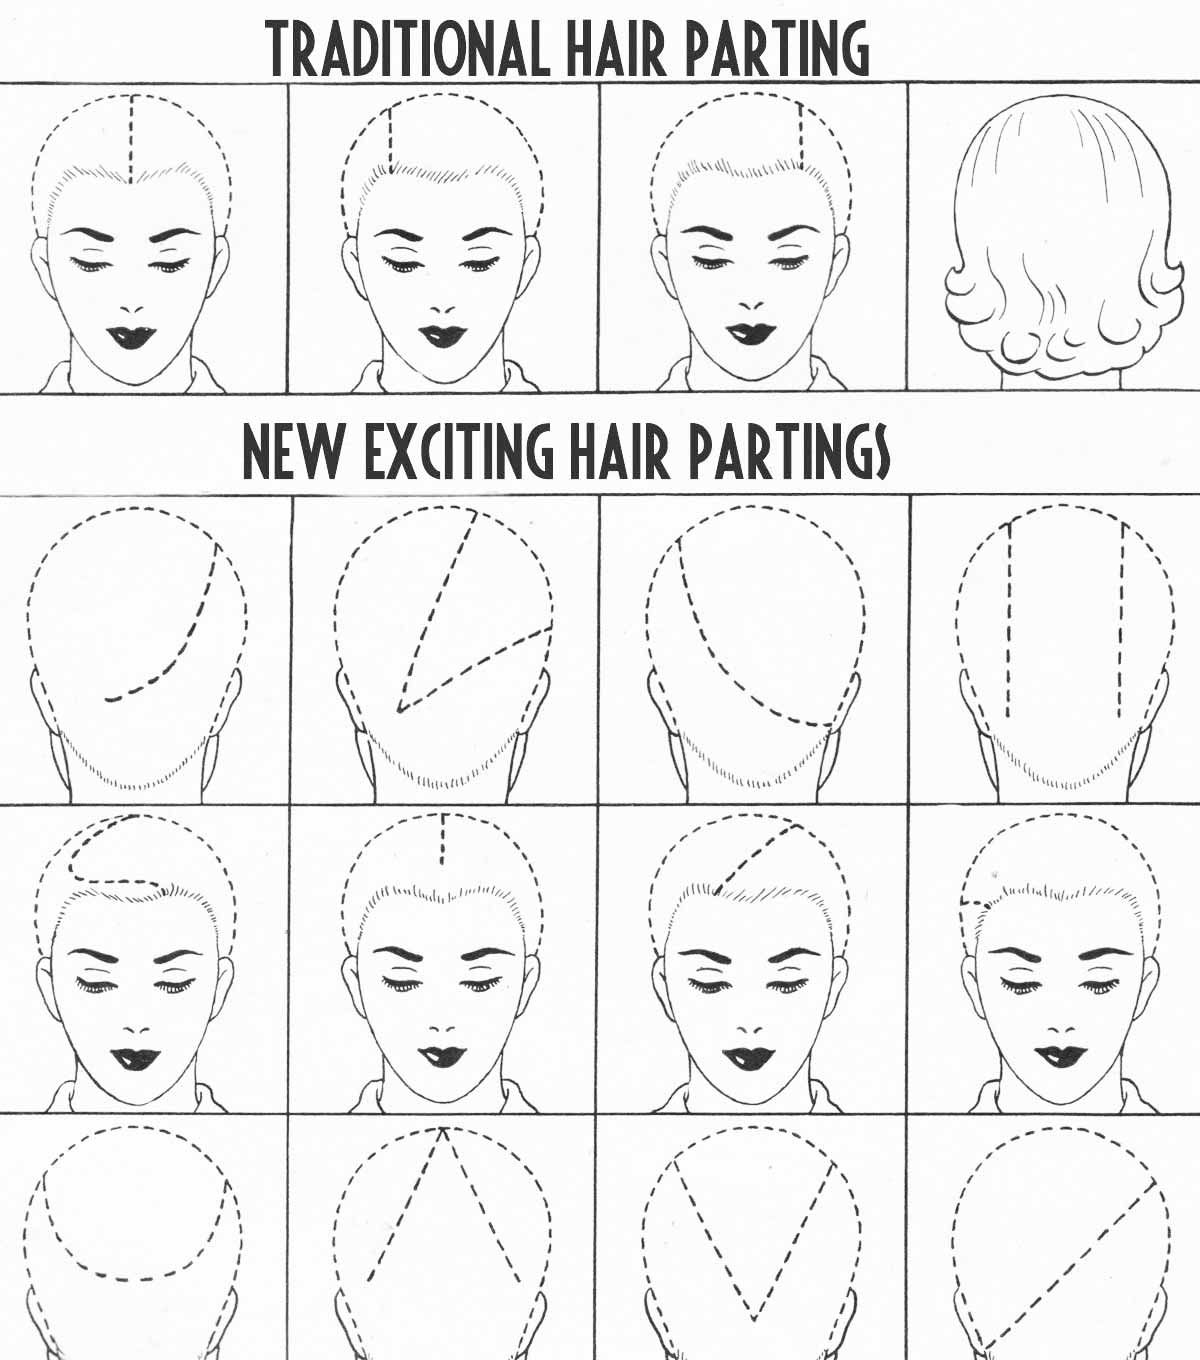 1940s Hairstyle Exciting Post War Hair Ideas Glamour Daze 1940s Hairstyles Vintage Hairstyles 1940s Hairstyles Short